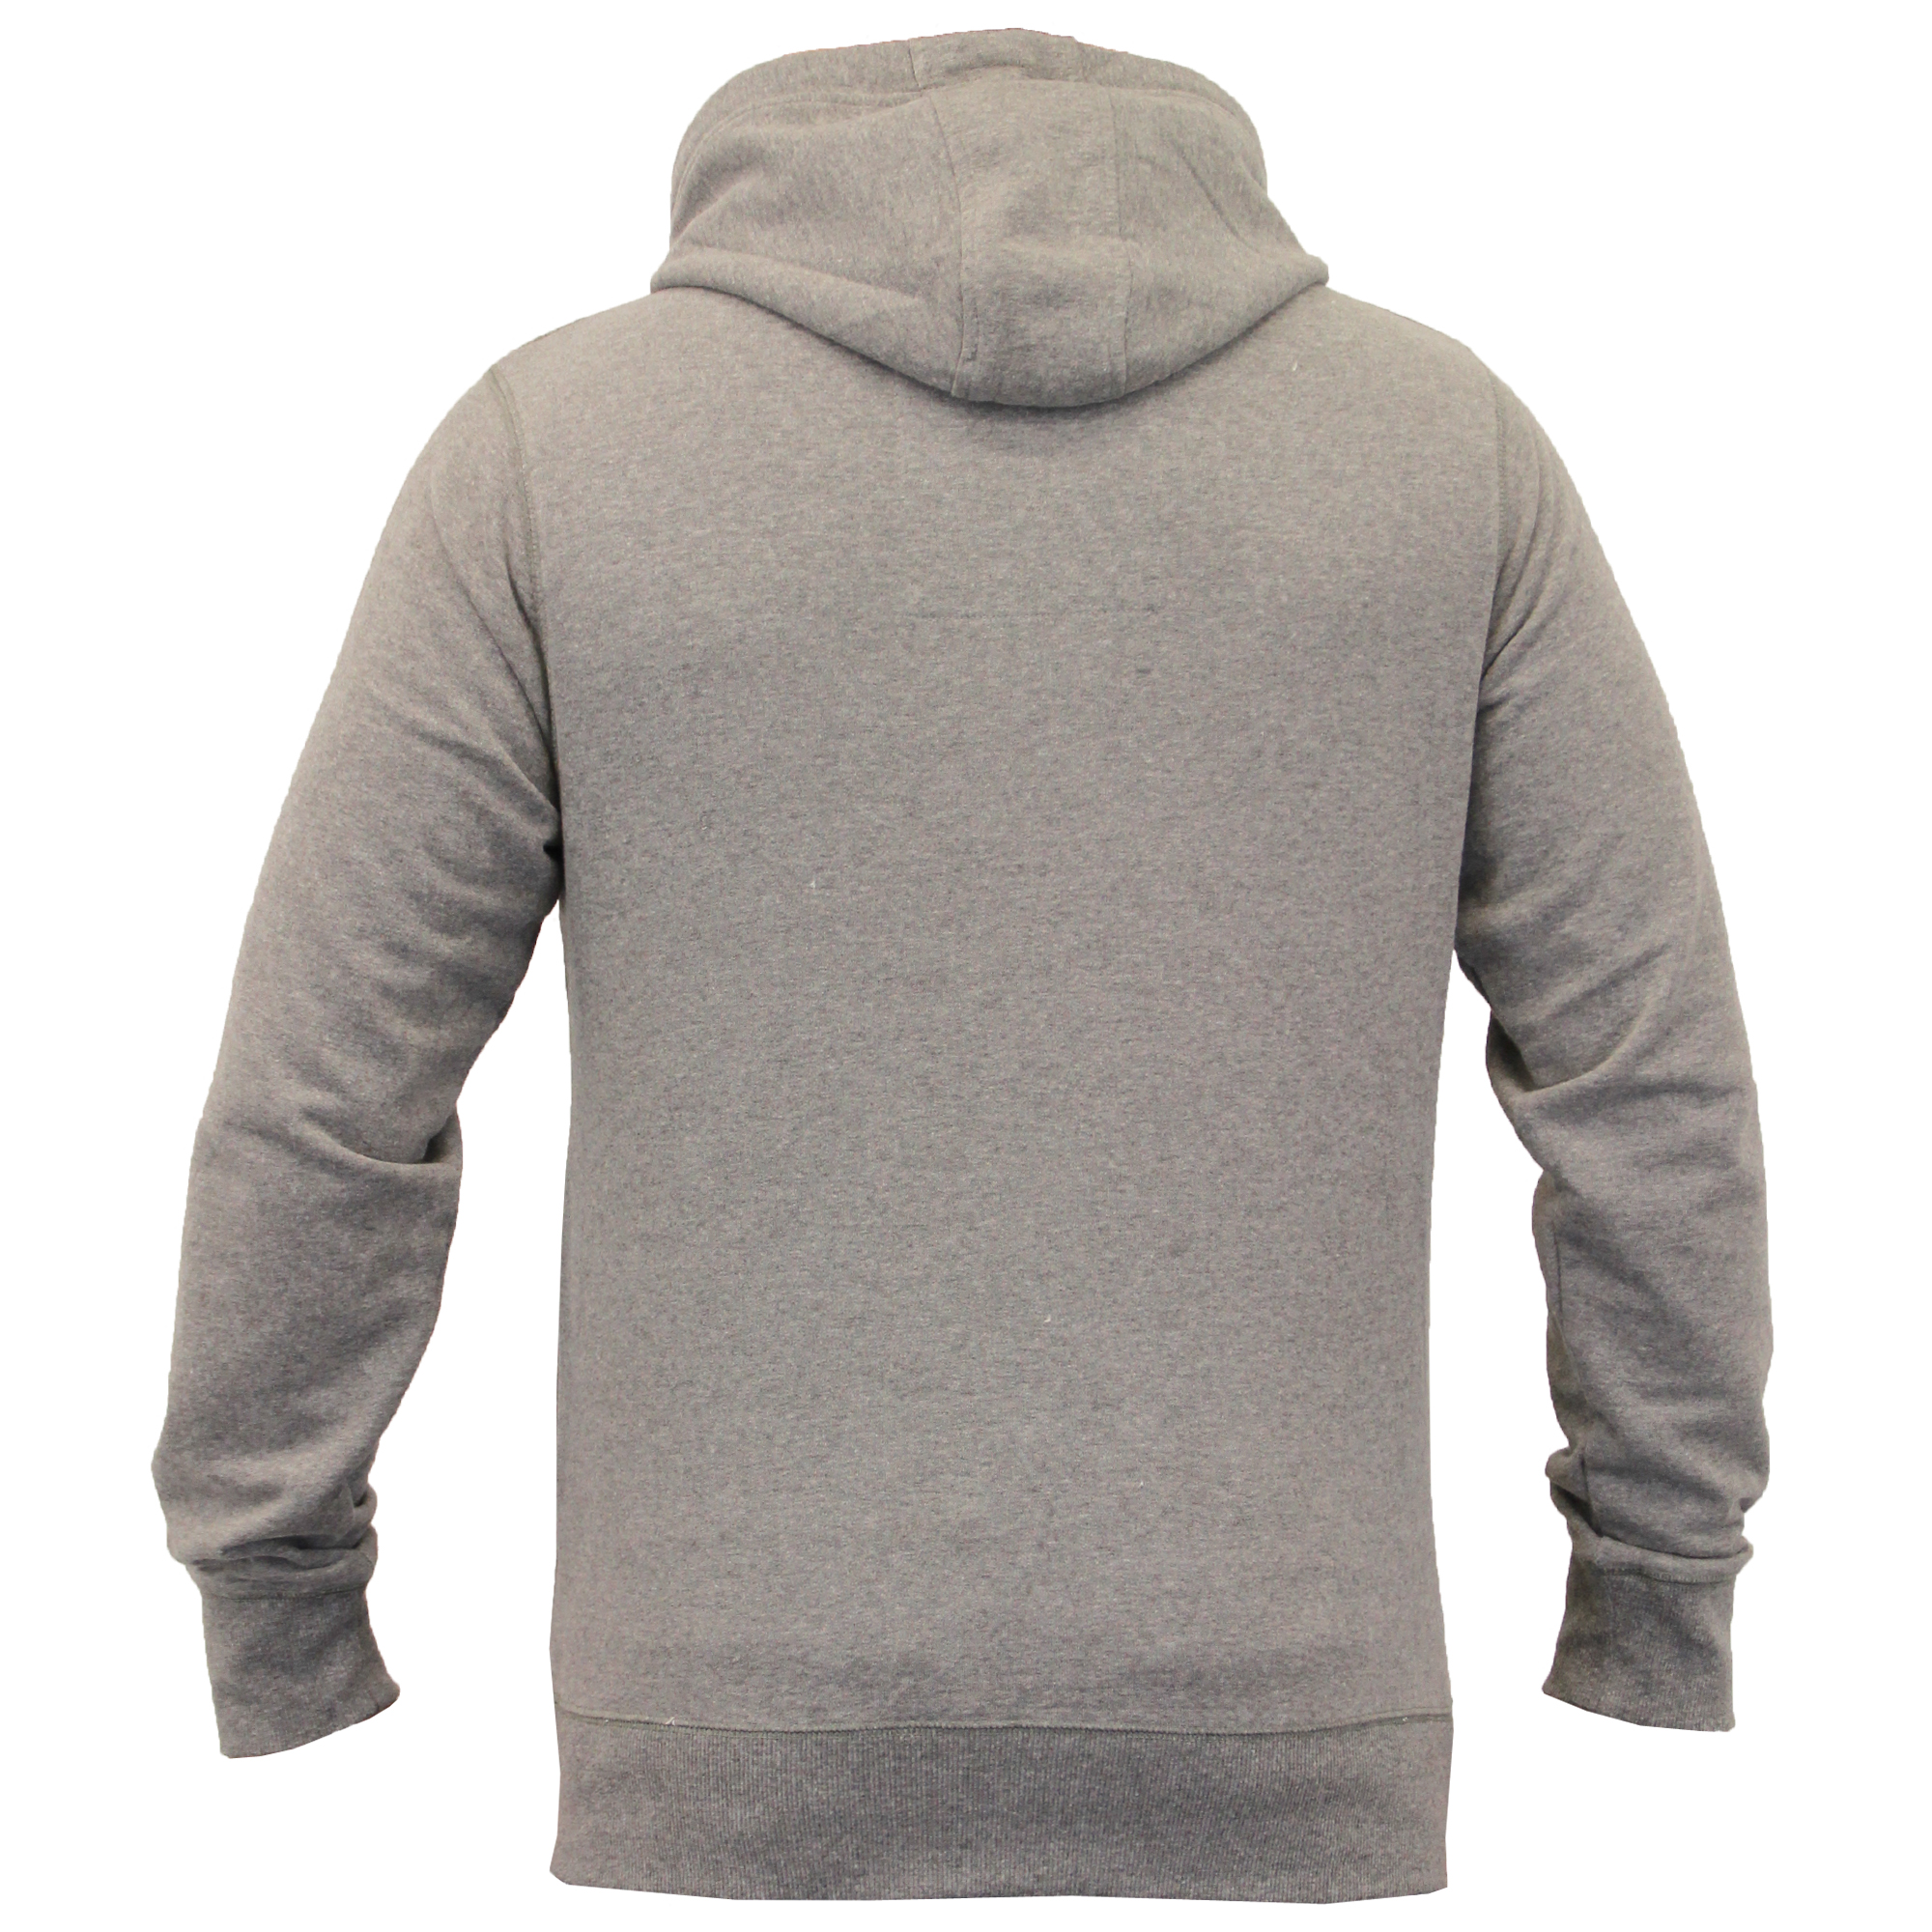 Mens-Hooded-Top-Sweatshirt-By-Tokyo-Laundry-Fleece-Lined thumbnail 7